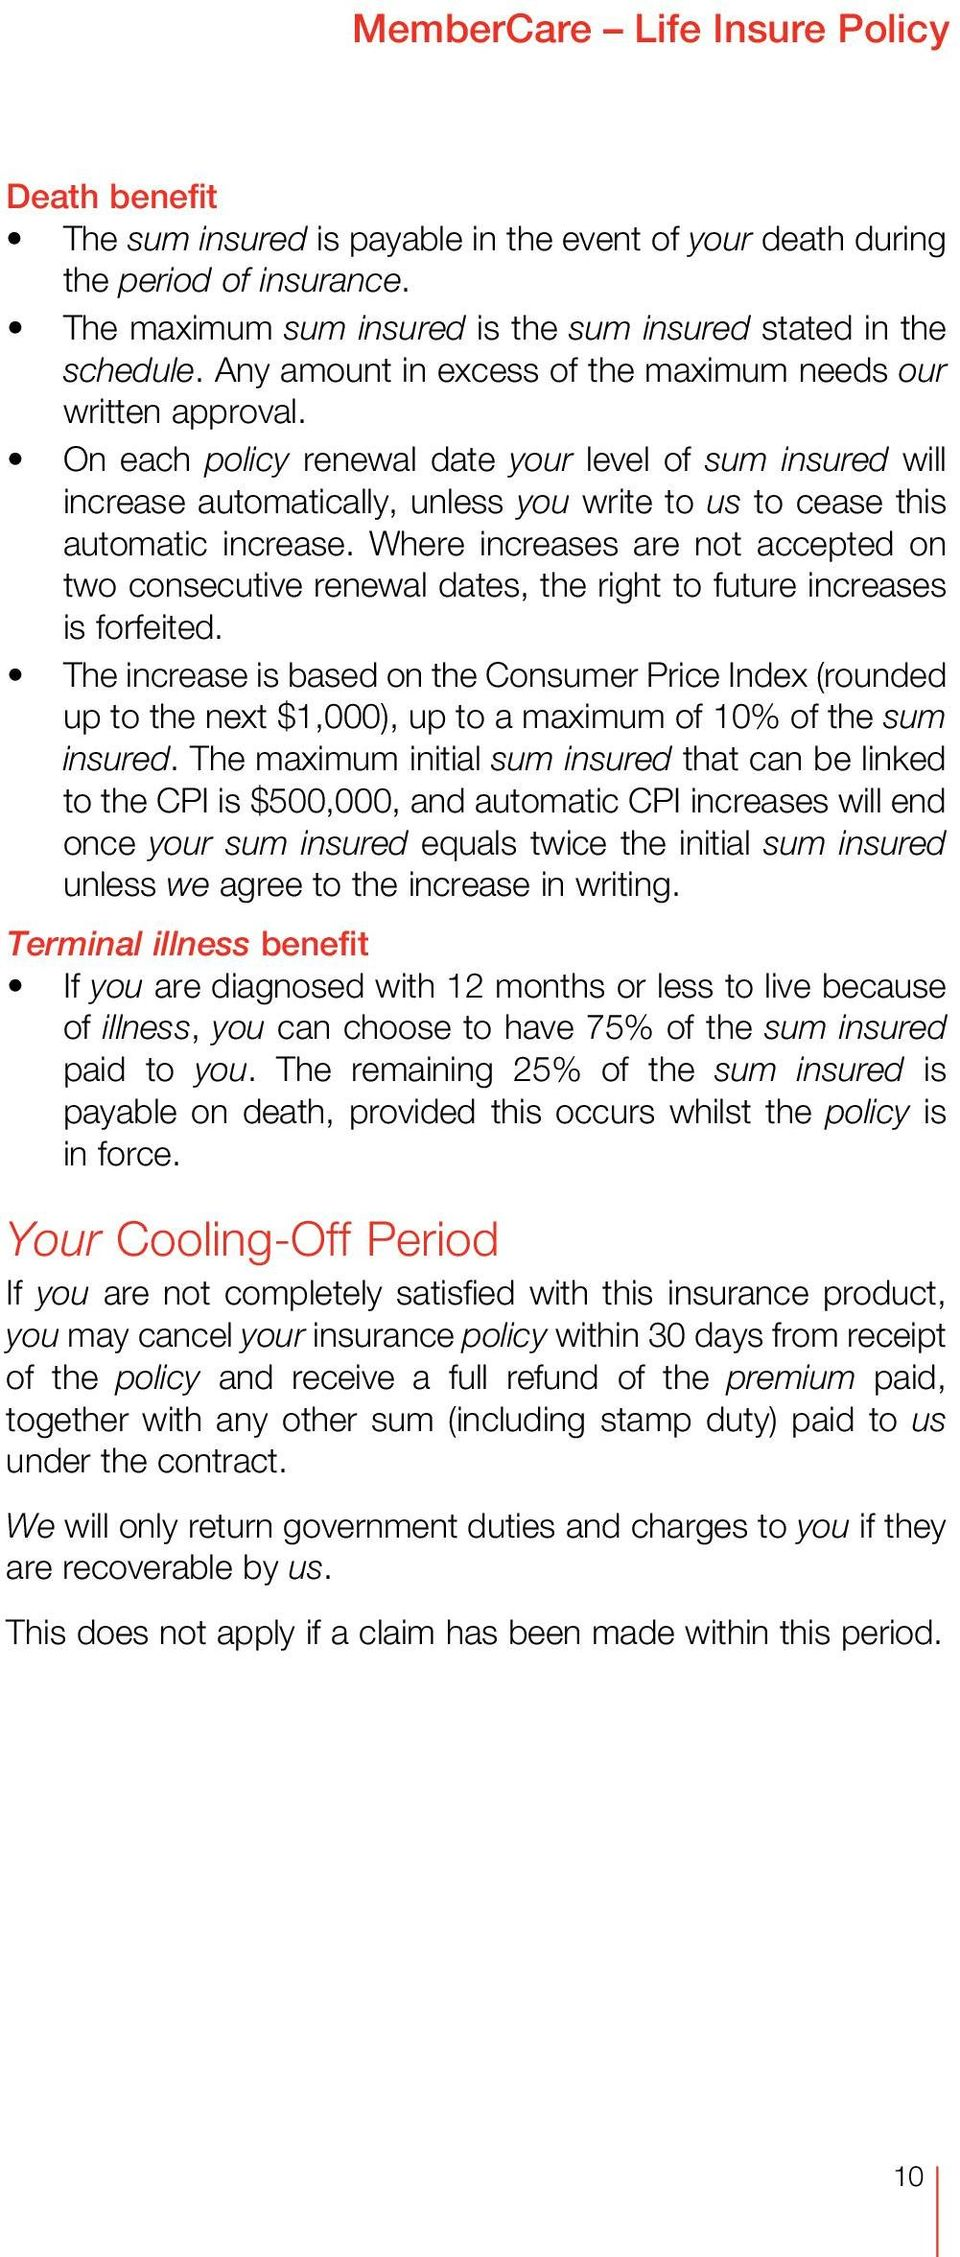 On each policy renewal date your level of sum insured will increase automatically, unless you write to us to cease this automatic increase.